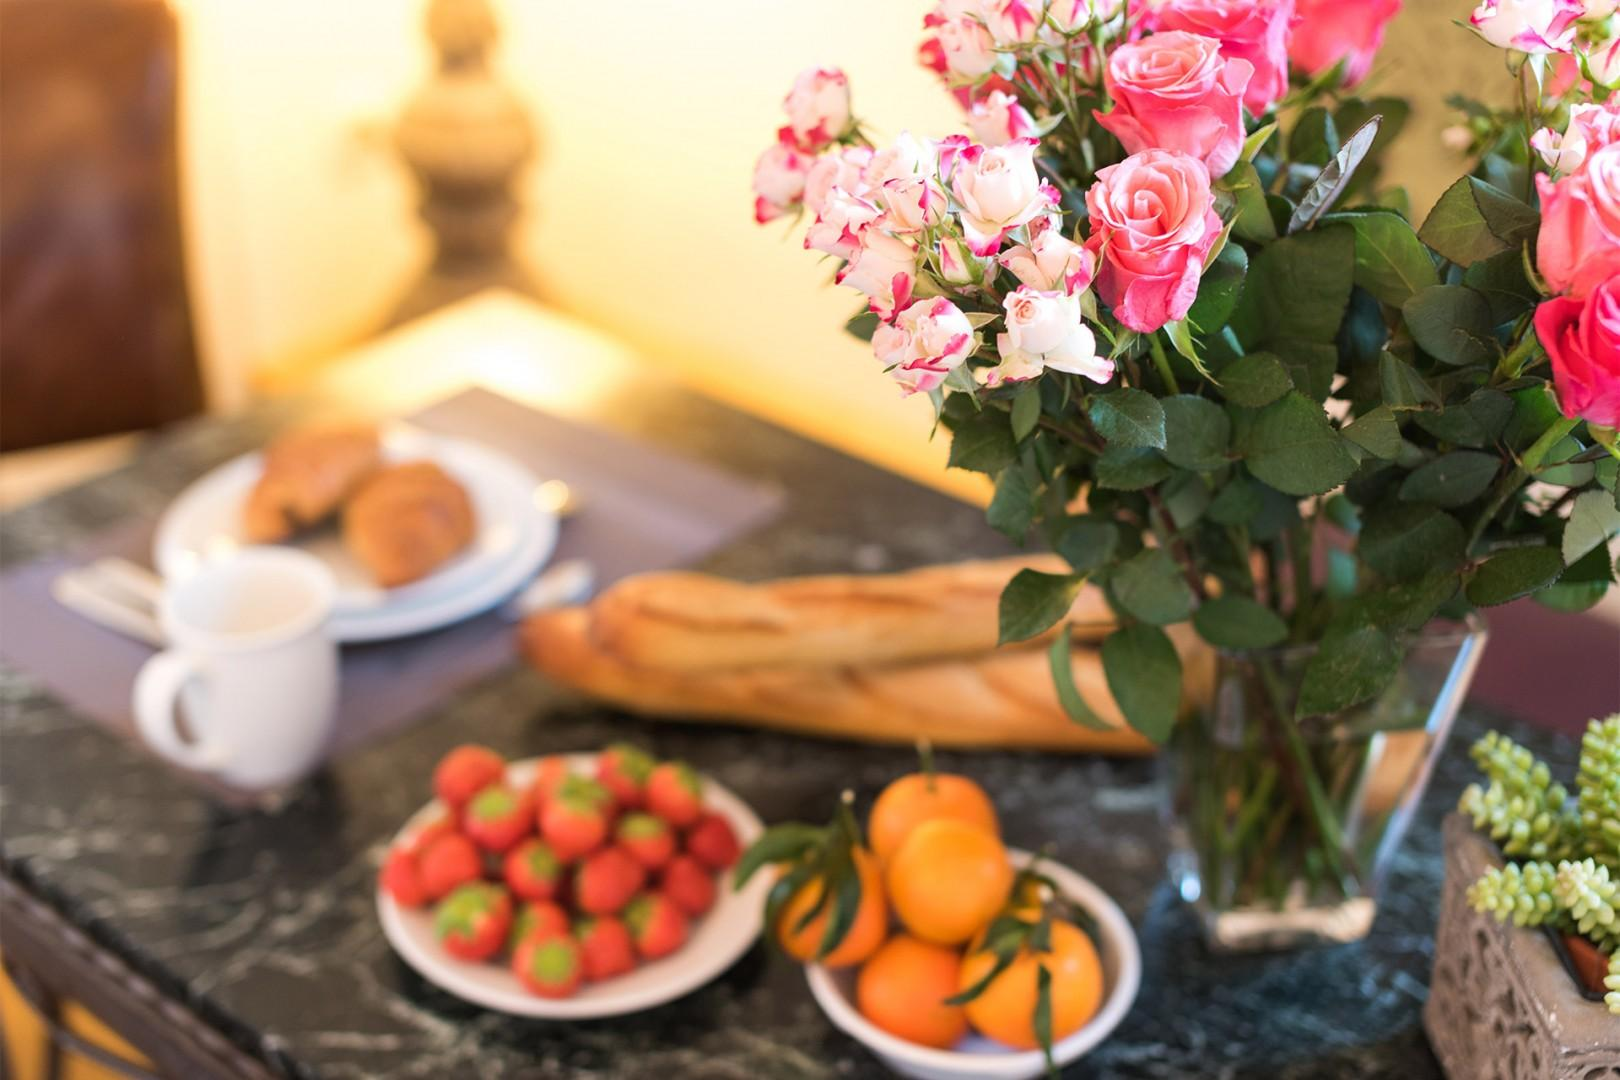 Set a beautiful table for your Parsian breakfasts!